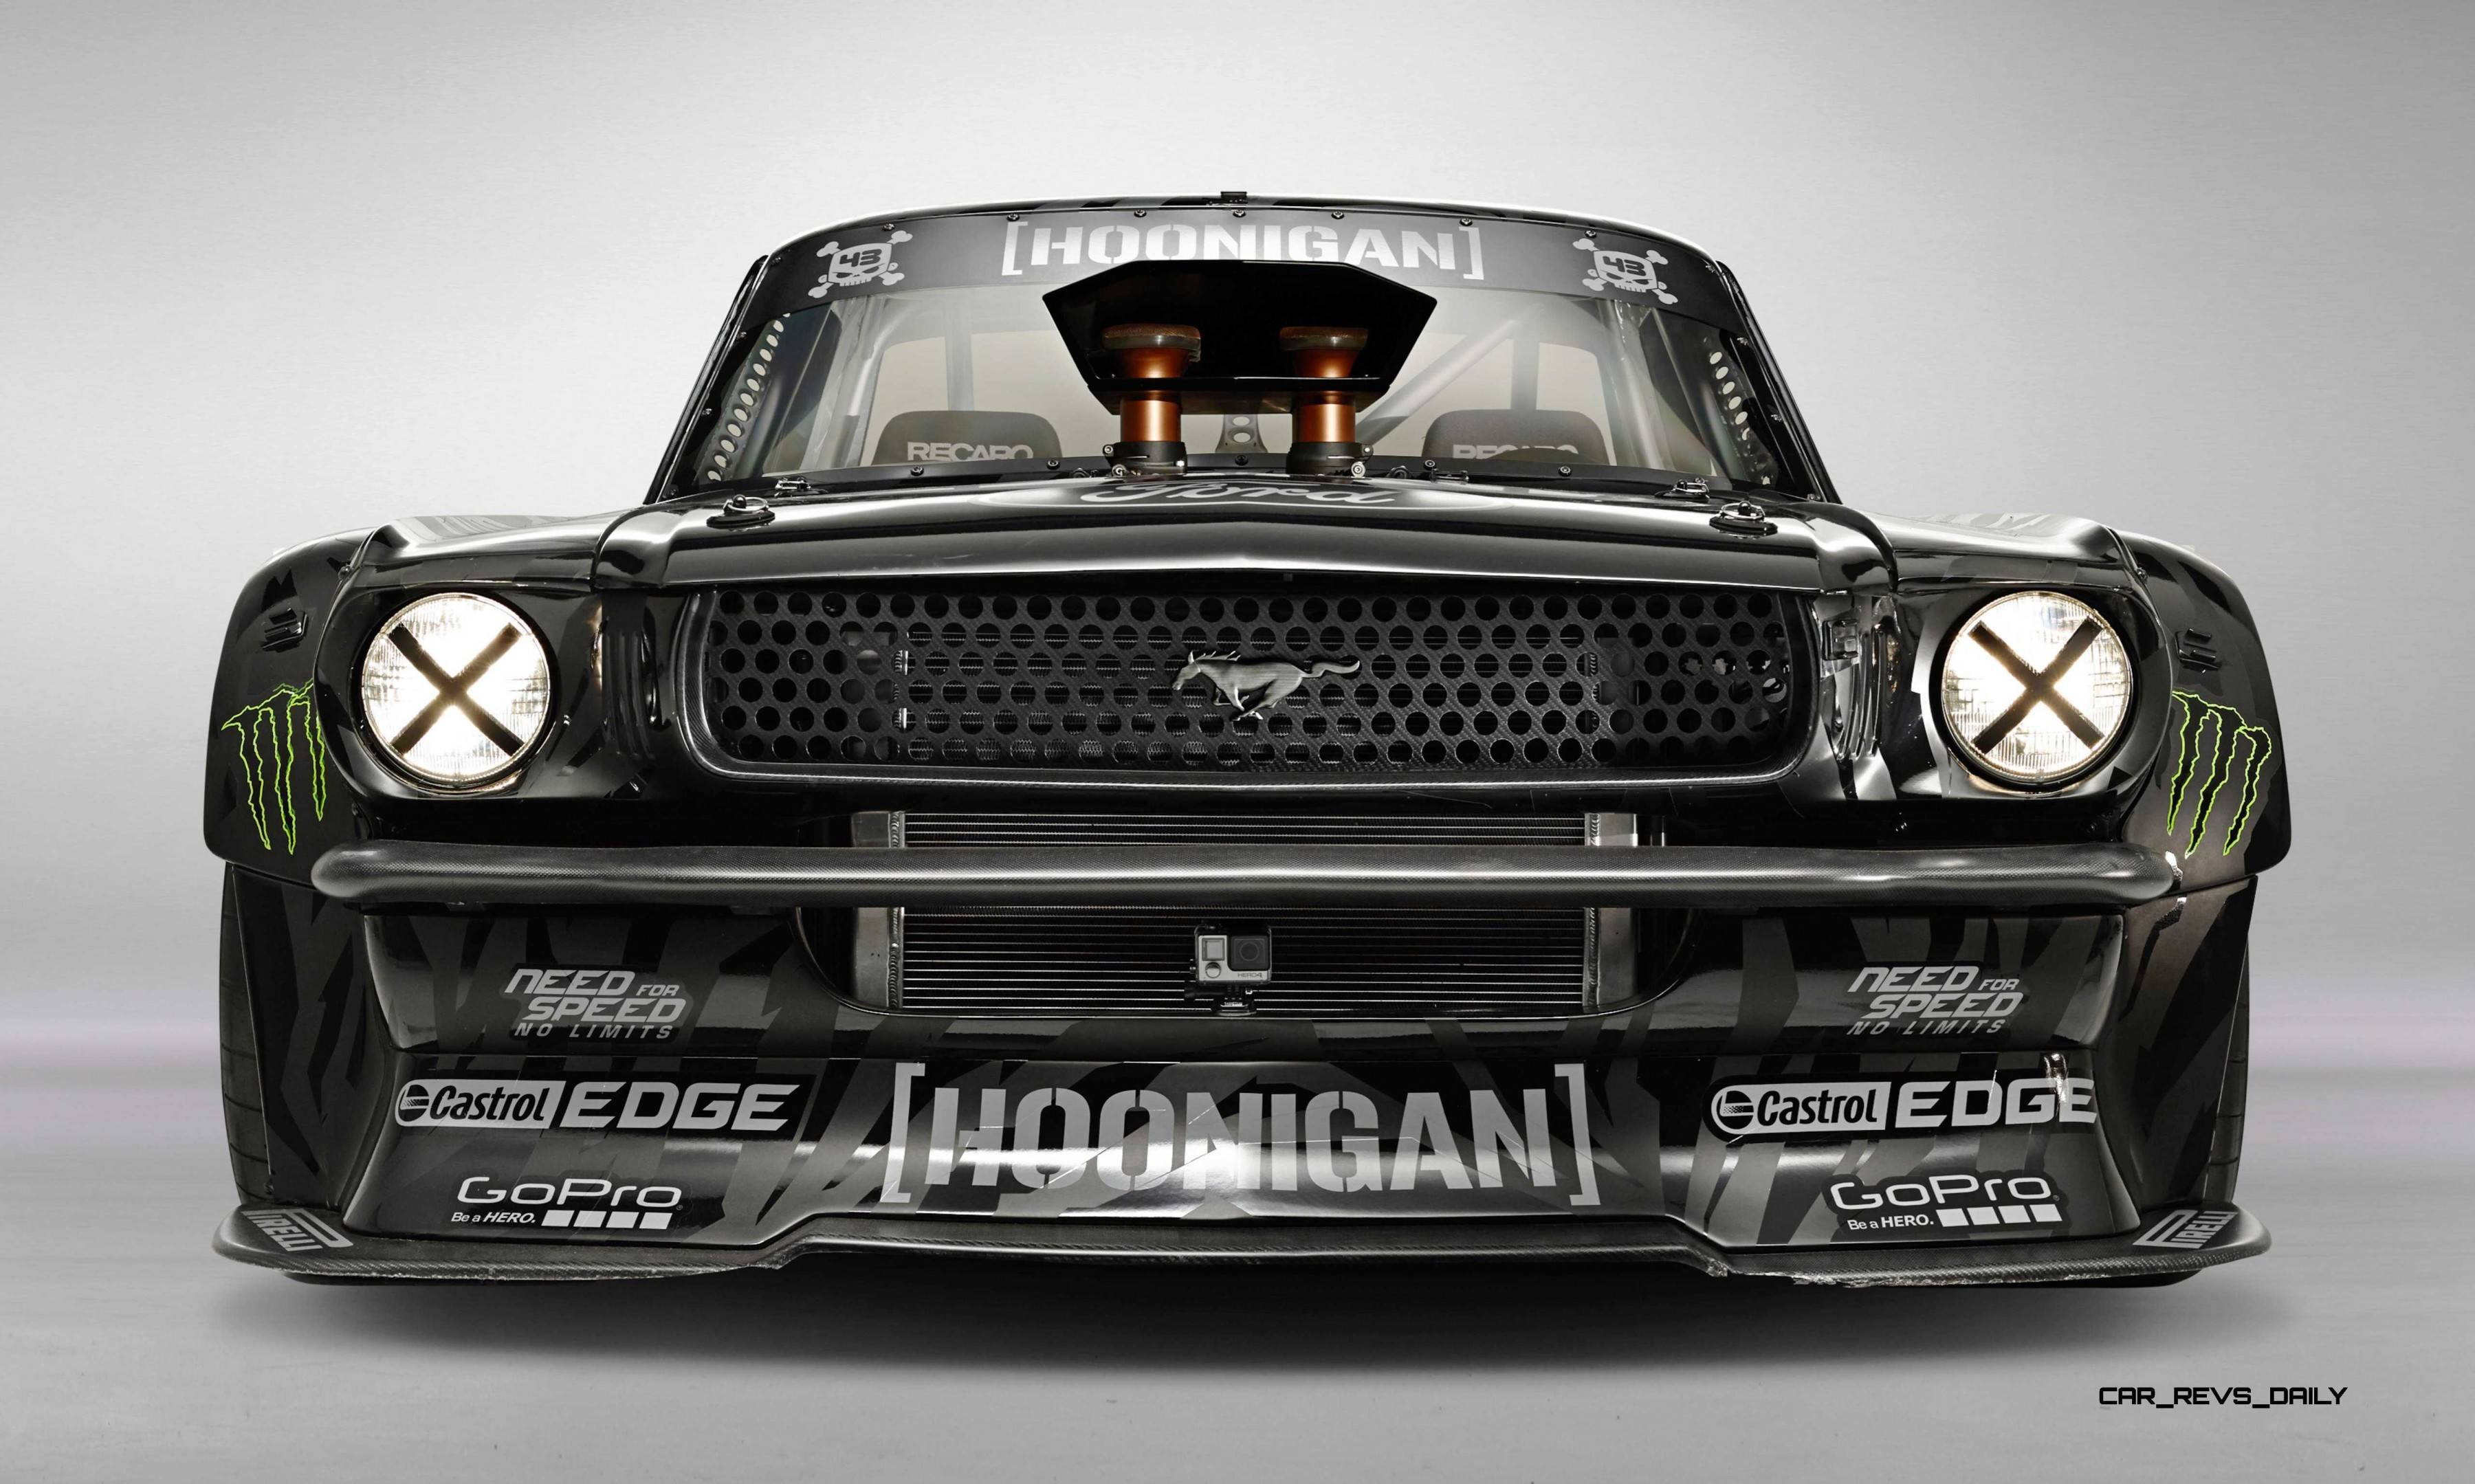 Best of sema 2014 825hp 1965 ford mustang hoonicorn by rtr and autosport dynamics